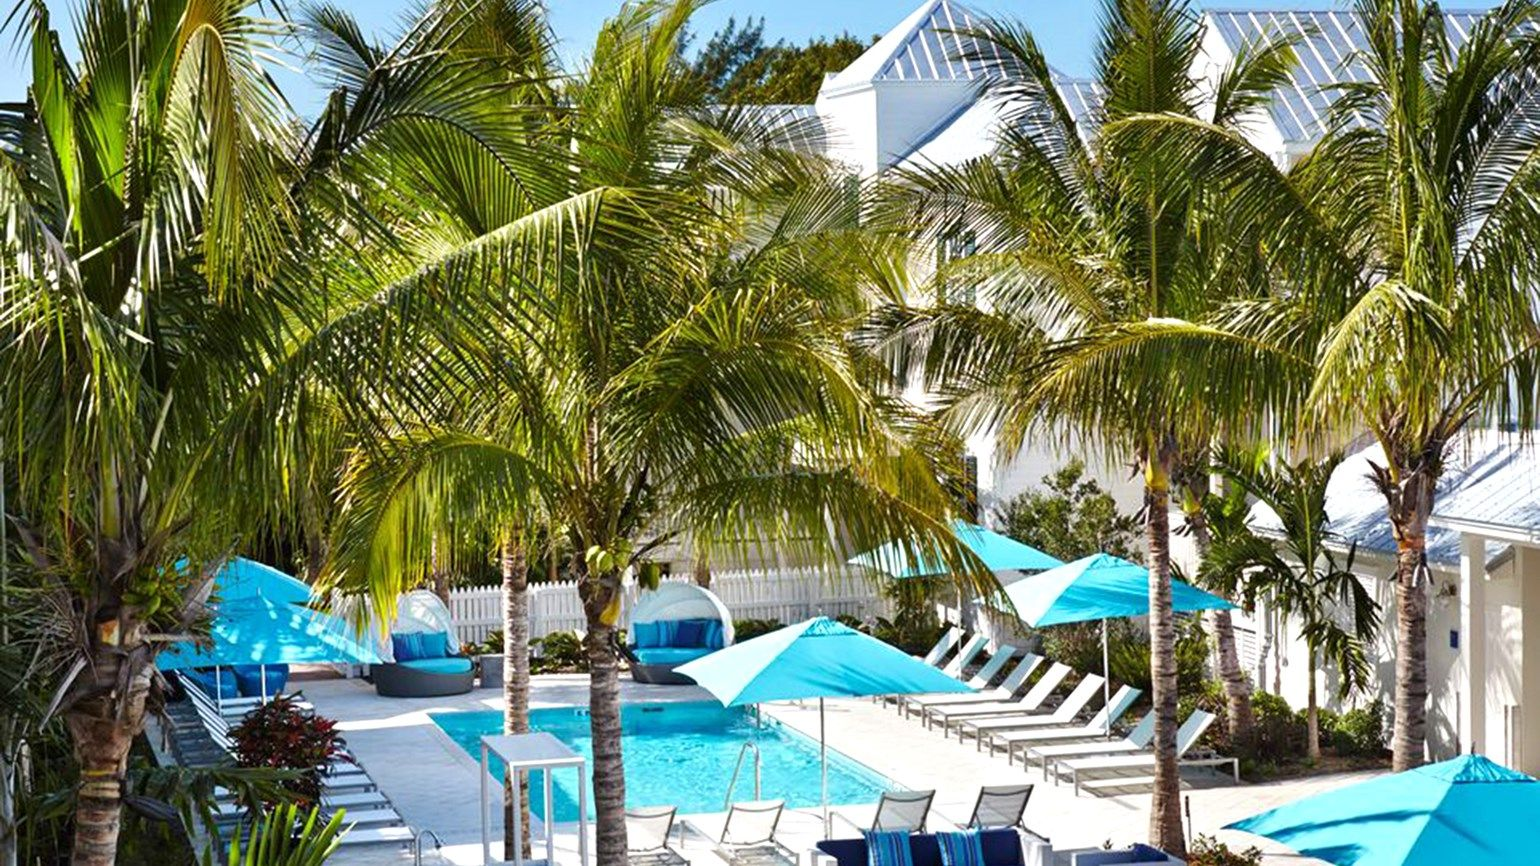 Articles Travel Weekly Travel weekly, Key west resorts